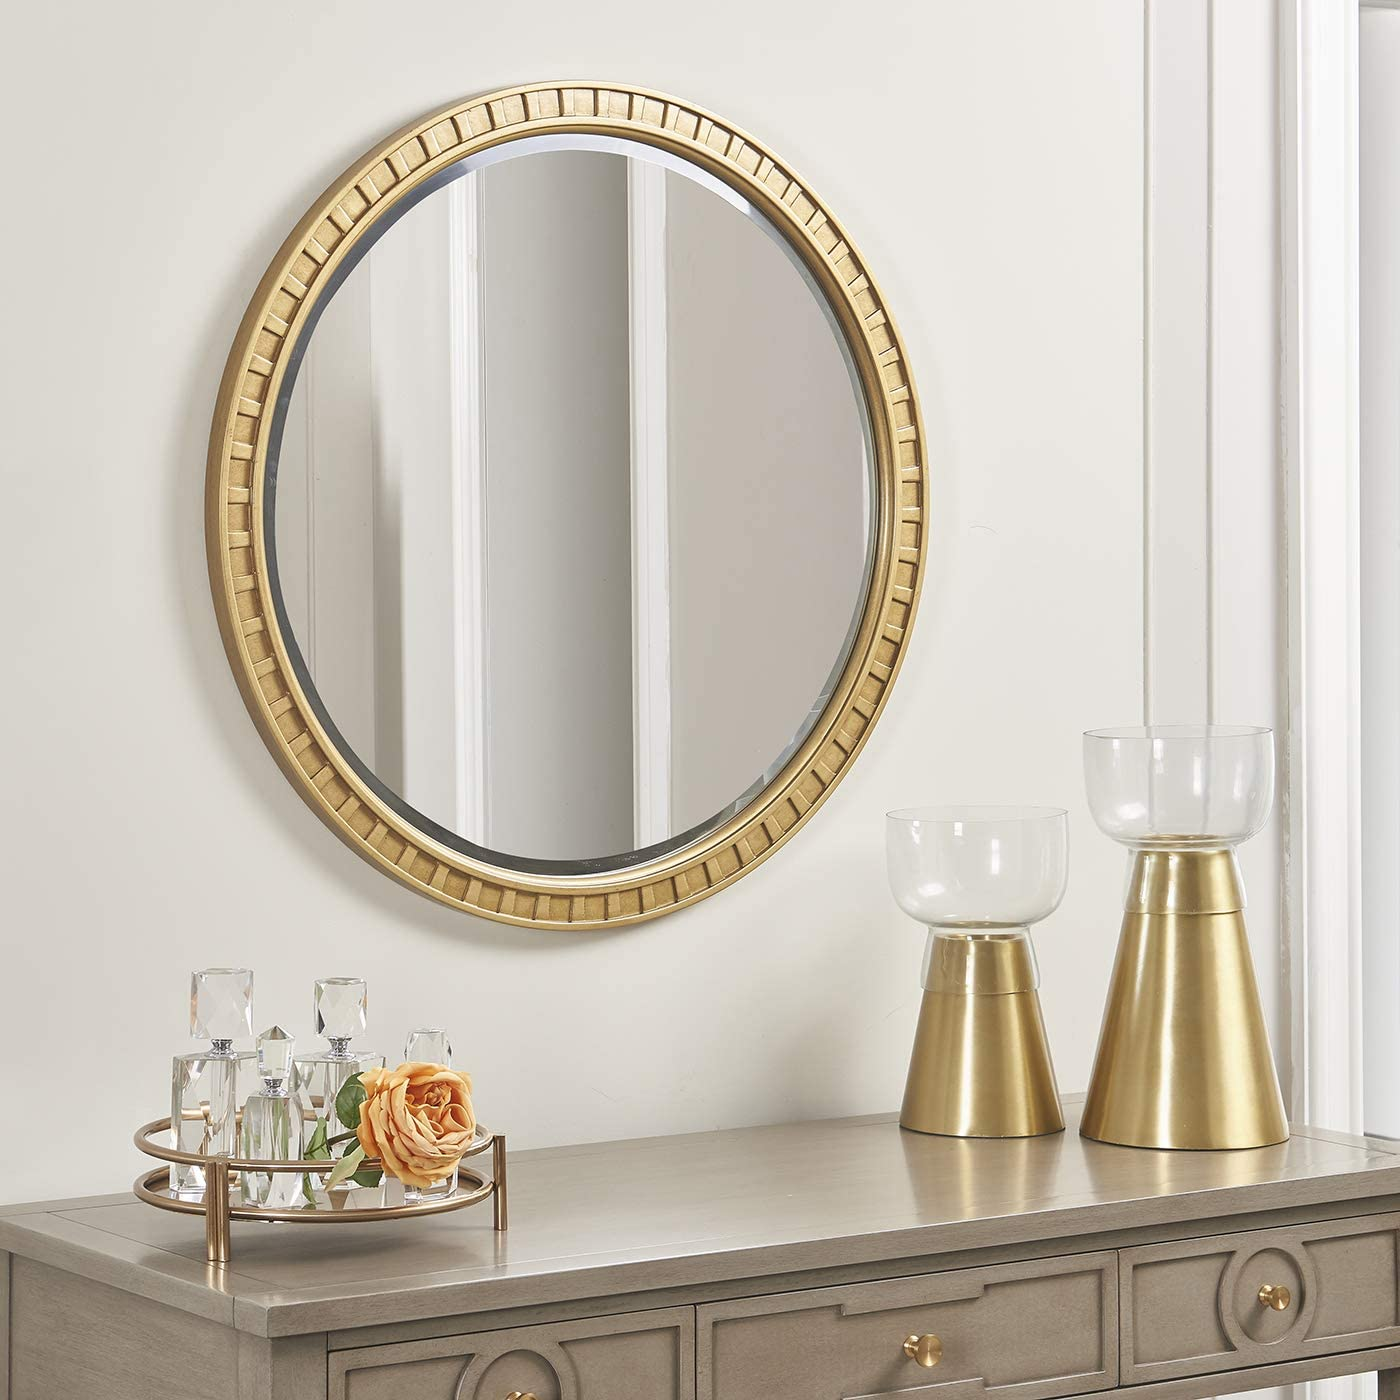 Amazon Com Jennifer Taylor Home Troy Round Gold Accent Wall Mirror Golden Oak Home Kitchen